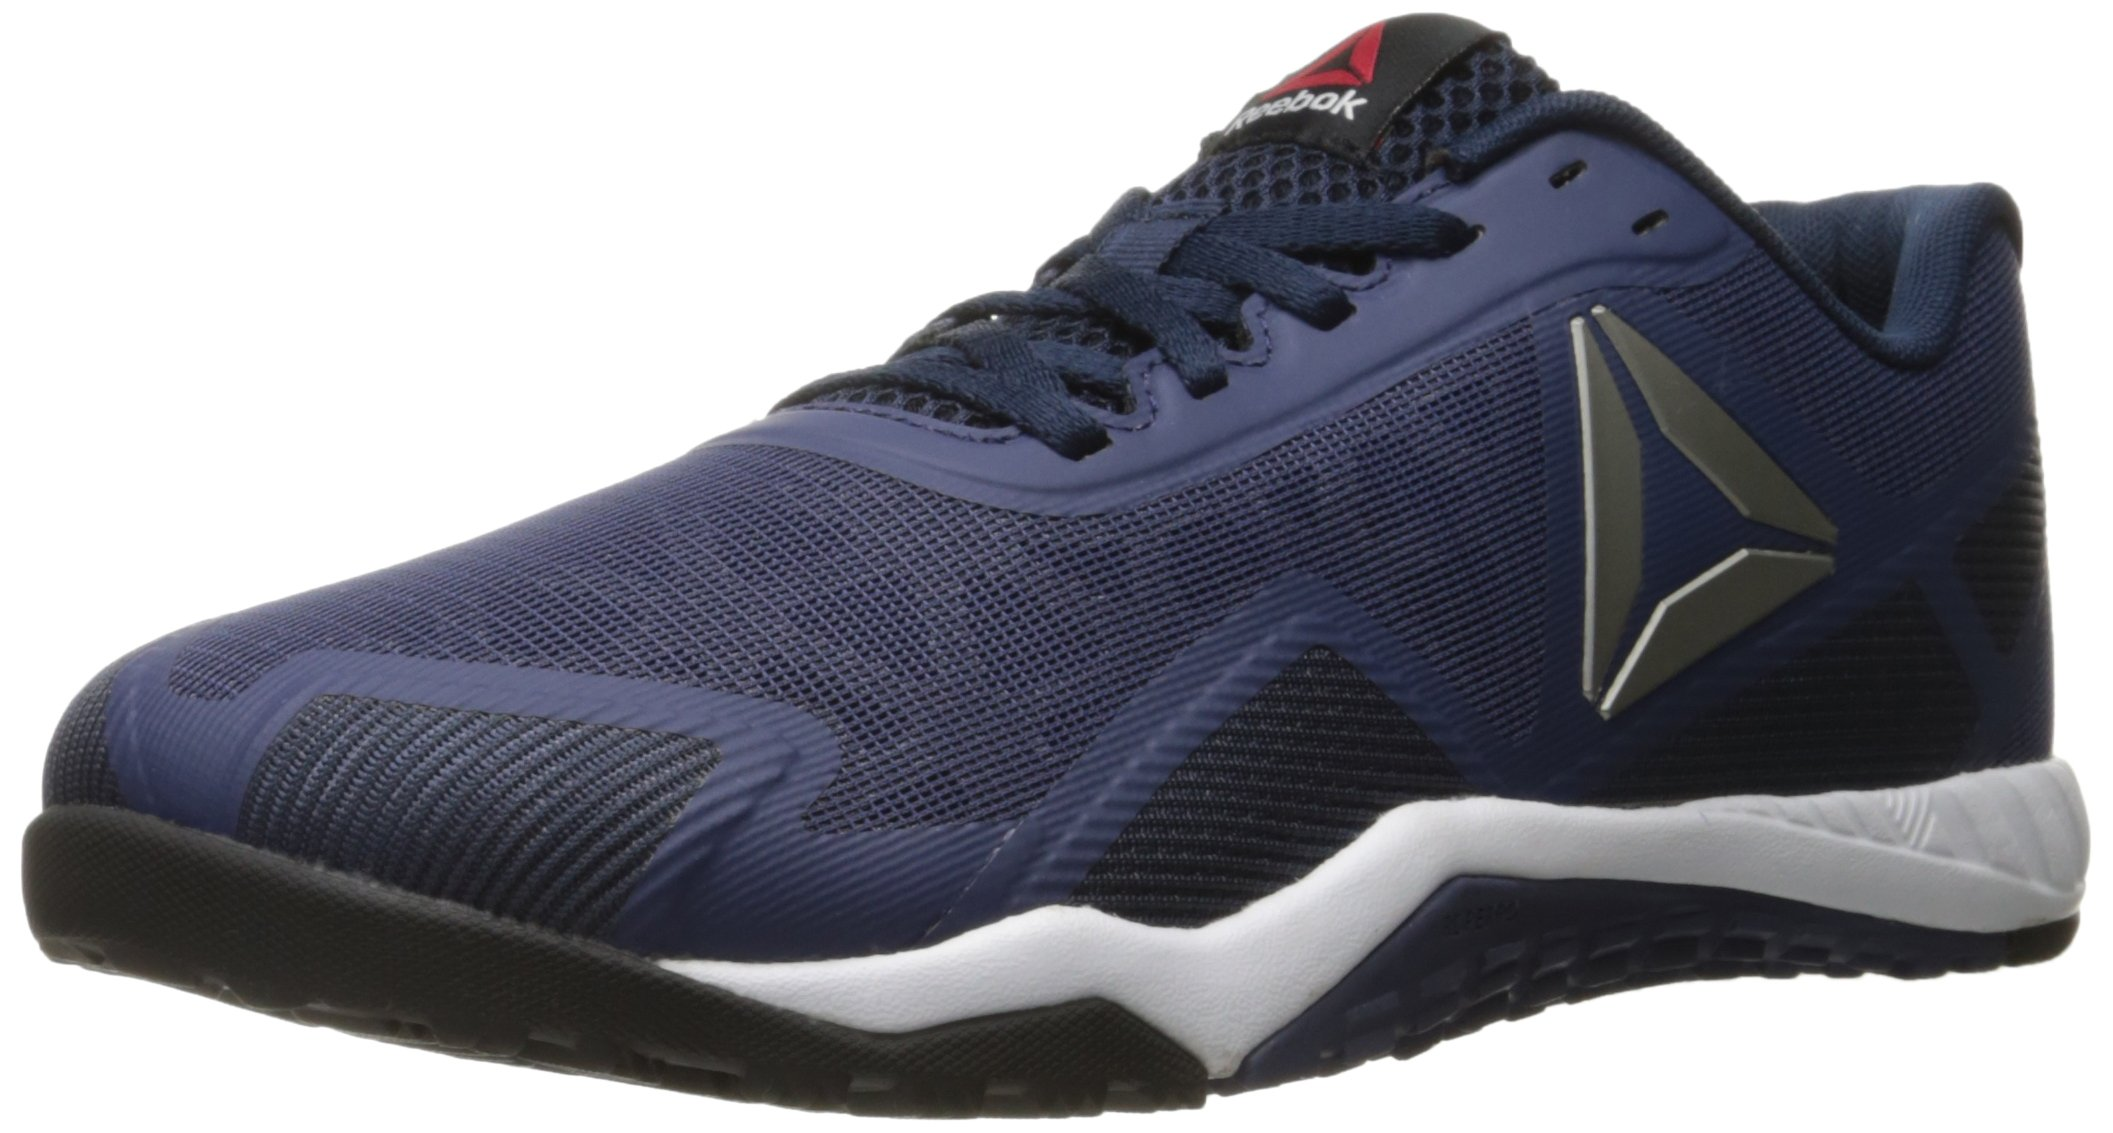 Reebok Men's ROS Workout TR 2-0 Cross-Trainer Shoe, Blue Ink/Collegiate Navy/Pewter, 12.5 M US by Reebok